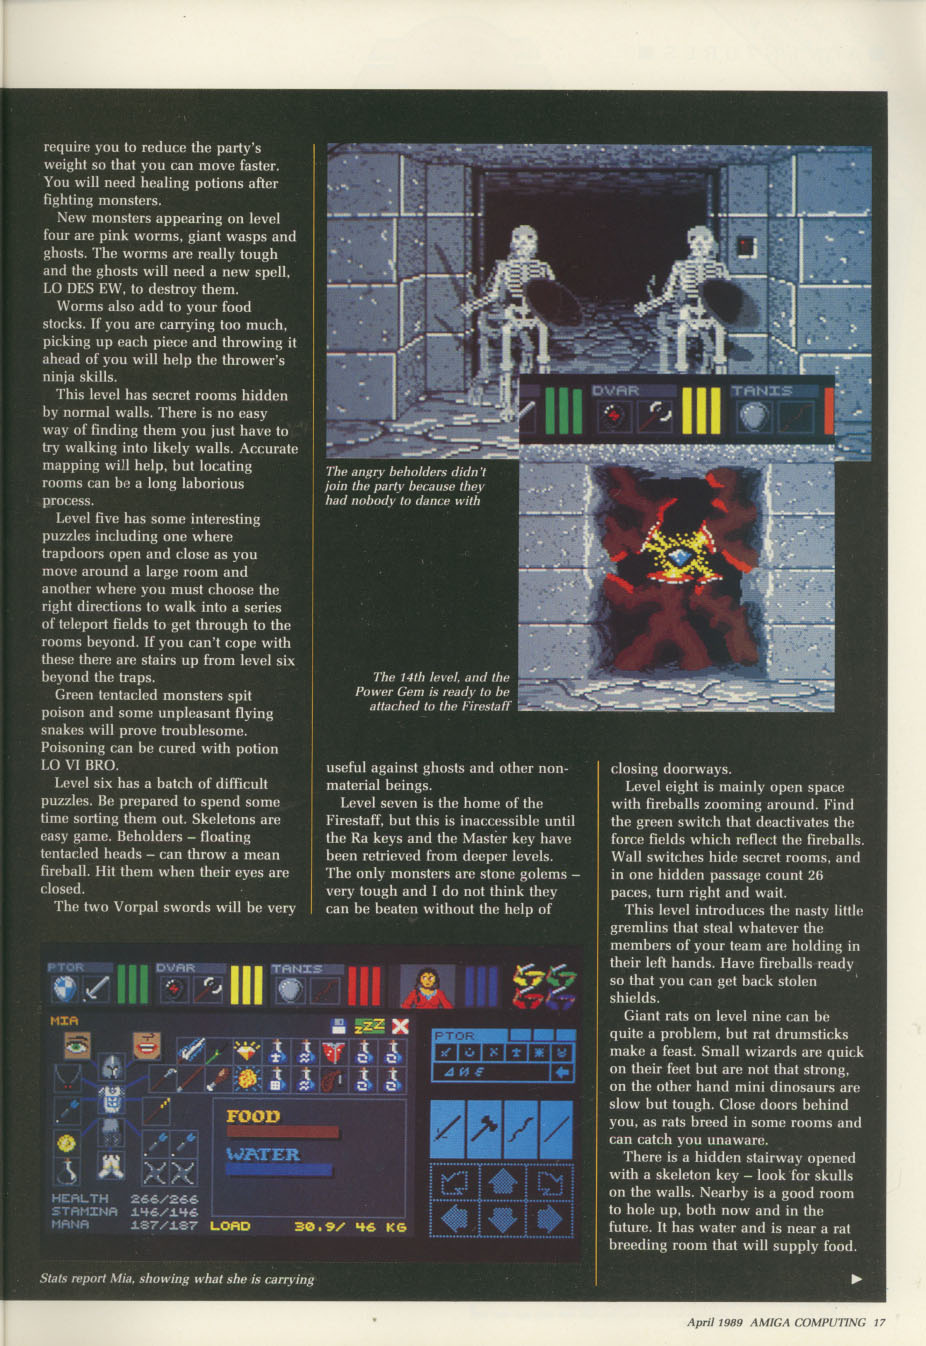 Dungeon Master for Amiga Review published in British / American magazine 'Amiga Computing', Issue #11 (Vol. 1 No. 11), Pages 17